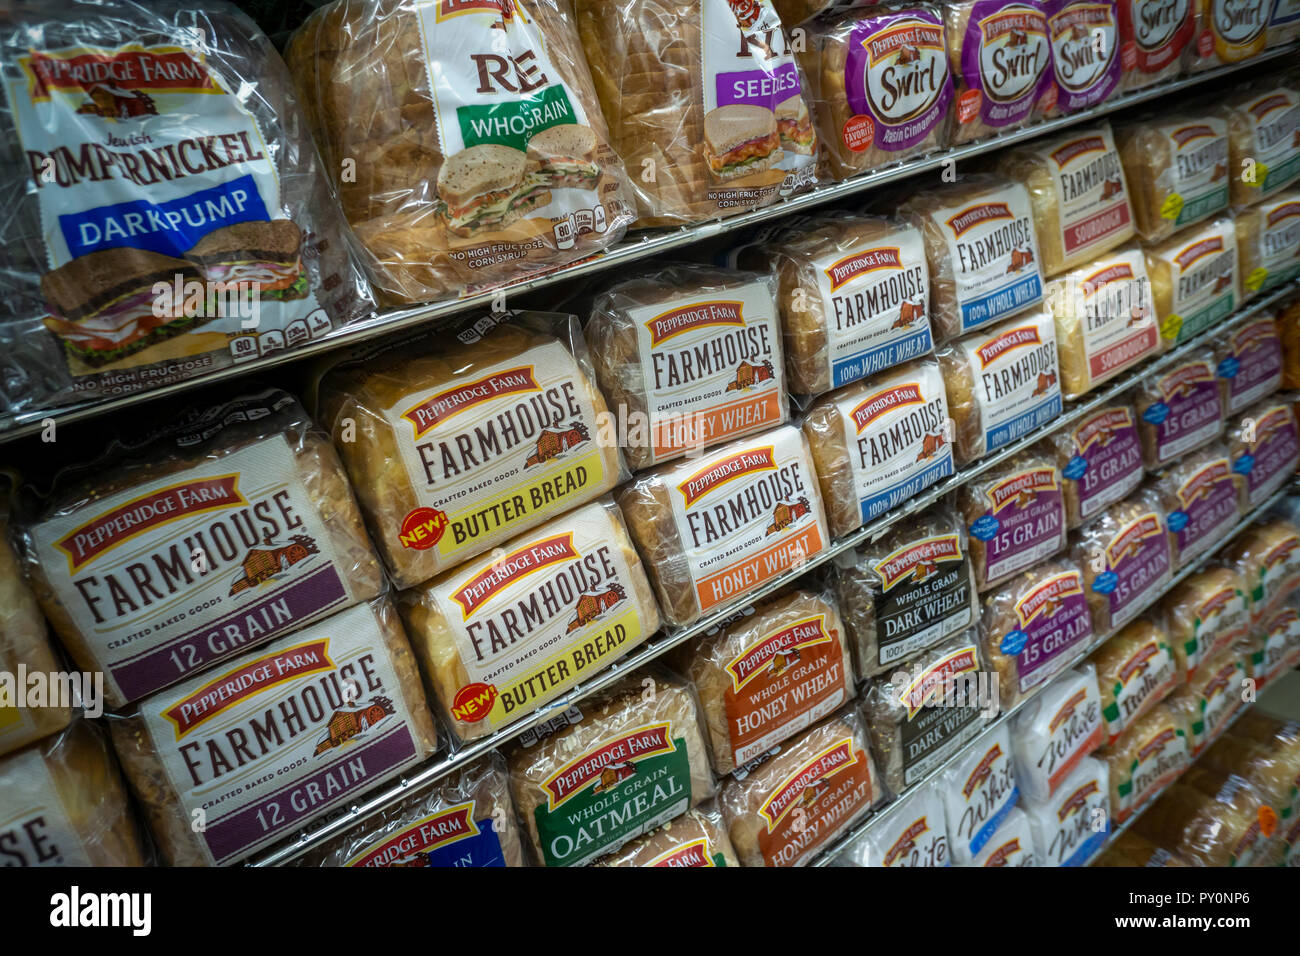 Loaves of different varieties of the Campbell Soup Company's Pepperidge Farm brand breads  are seen on supermarket shelves in New York on Tuesday, October 23, 2018. (© Richard B. Levine) Stock Photo